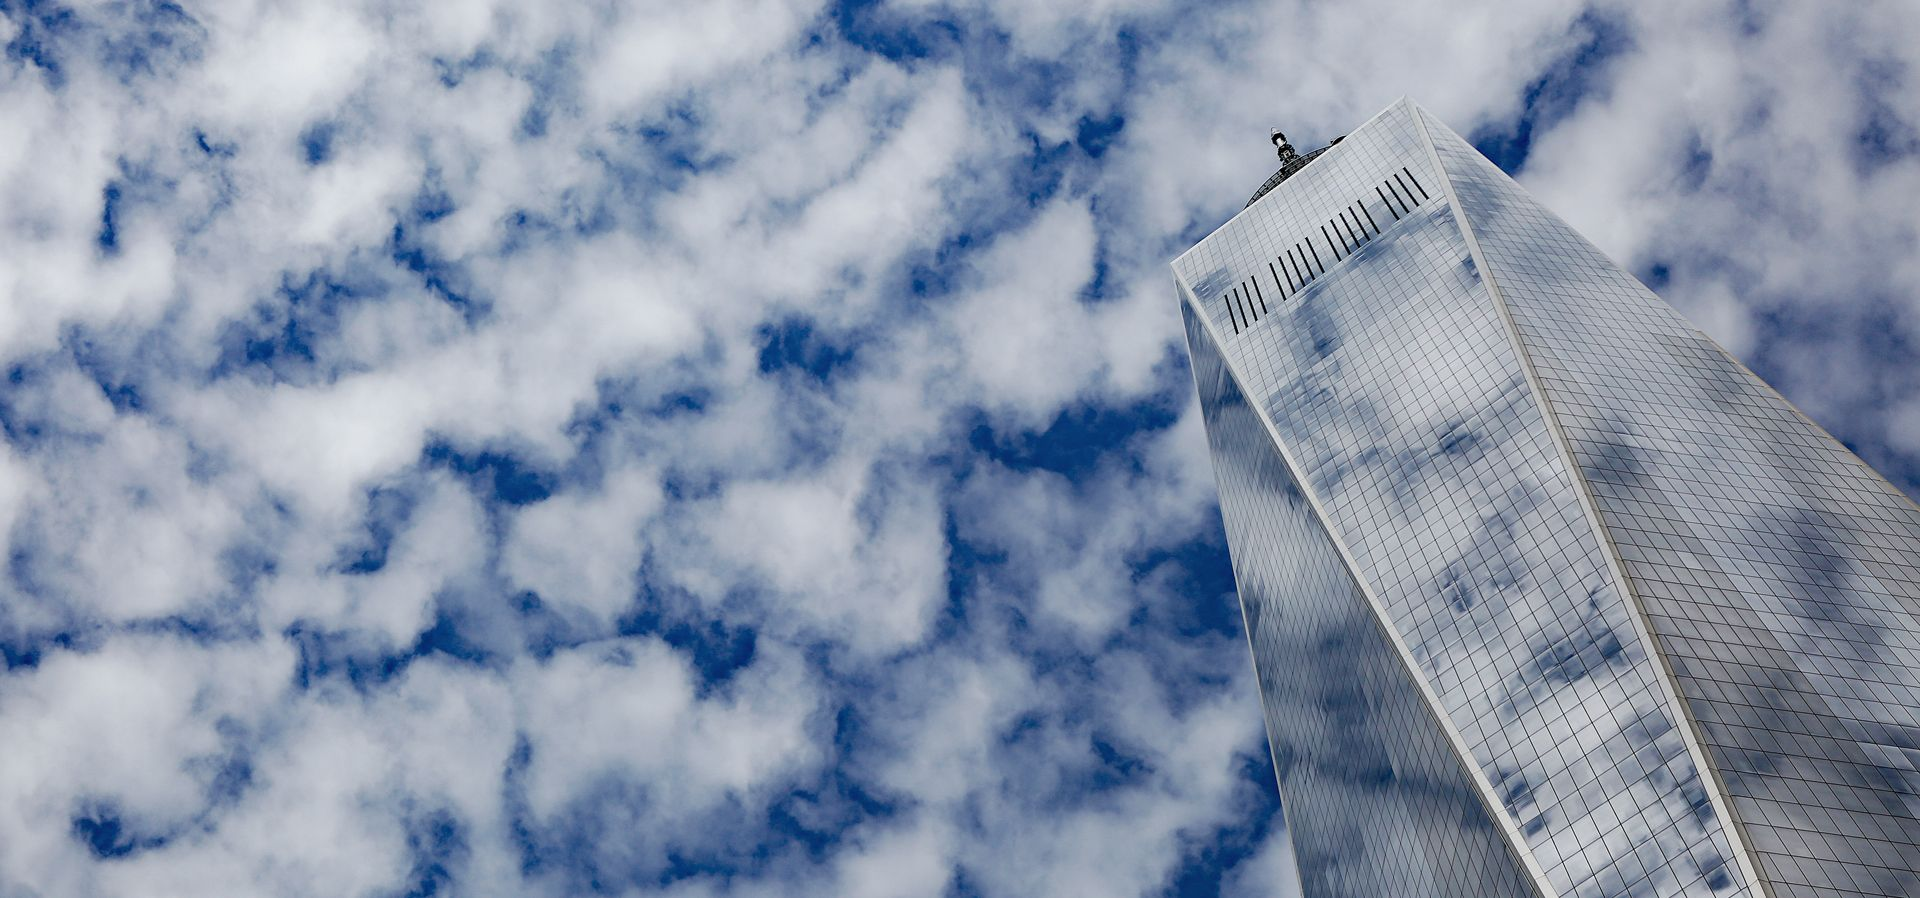 One World Trade Tower 4N0A8502